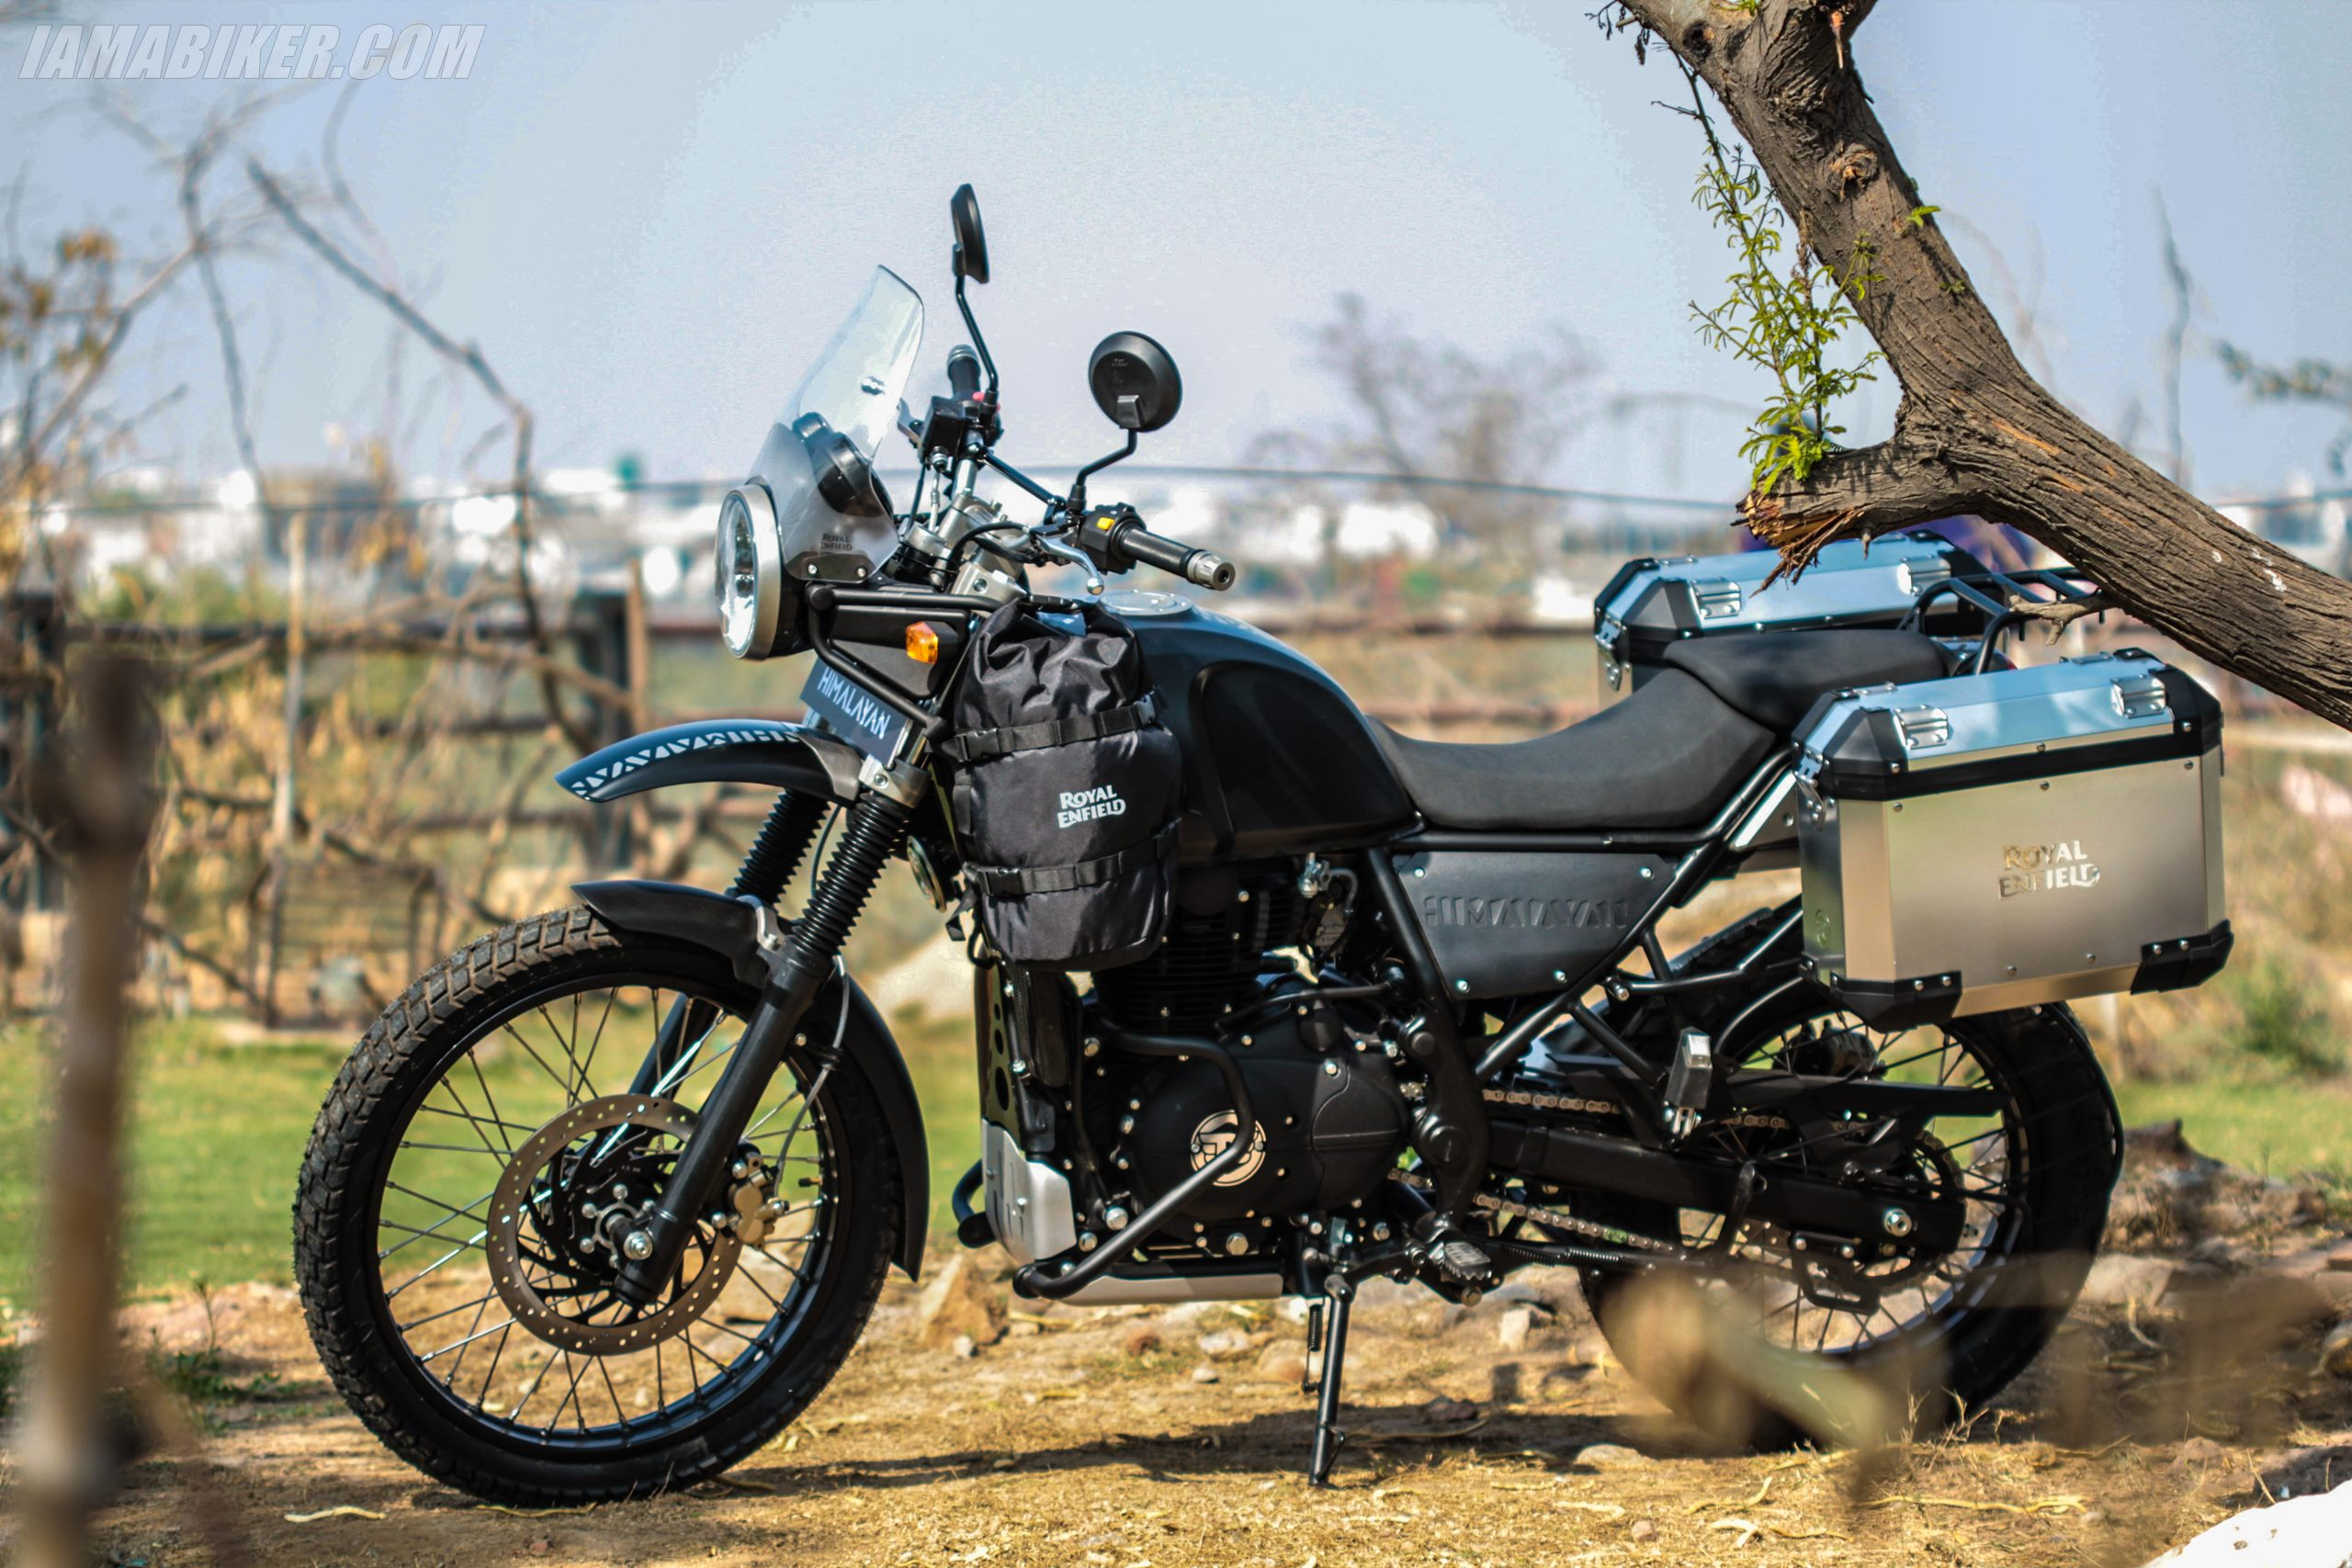 royal enfield himalayan wallpaper iamabiker everything motorcycle. Black Bedroom Furniture Sets. Home Design Ideas